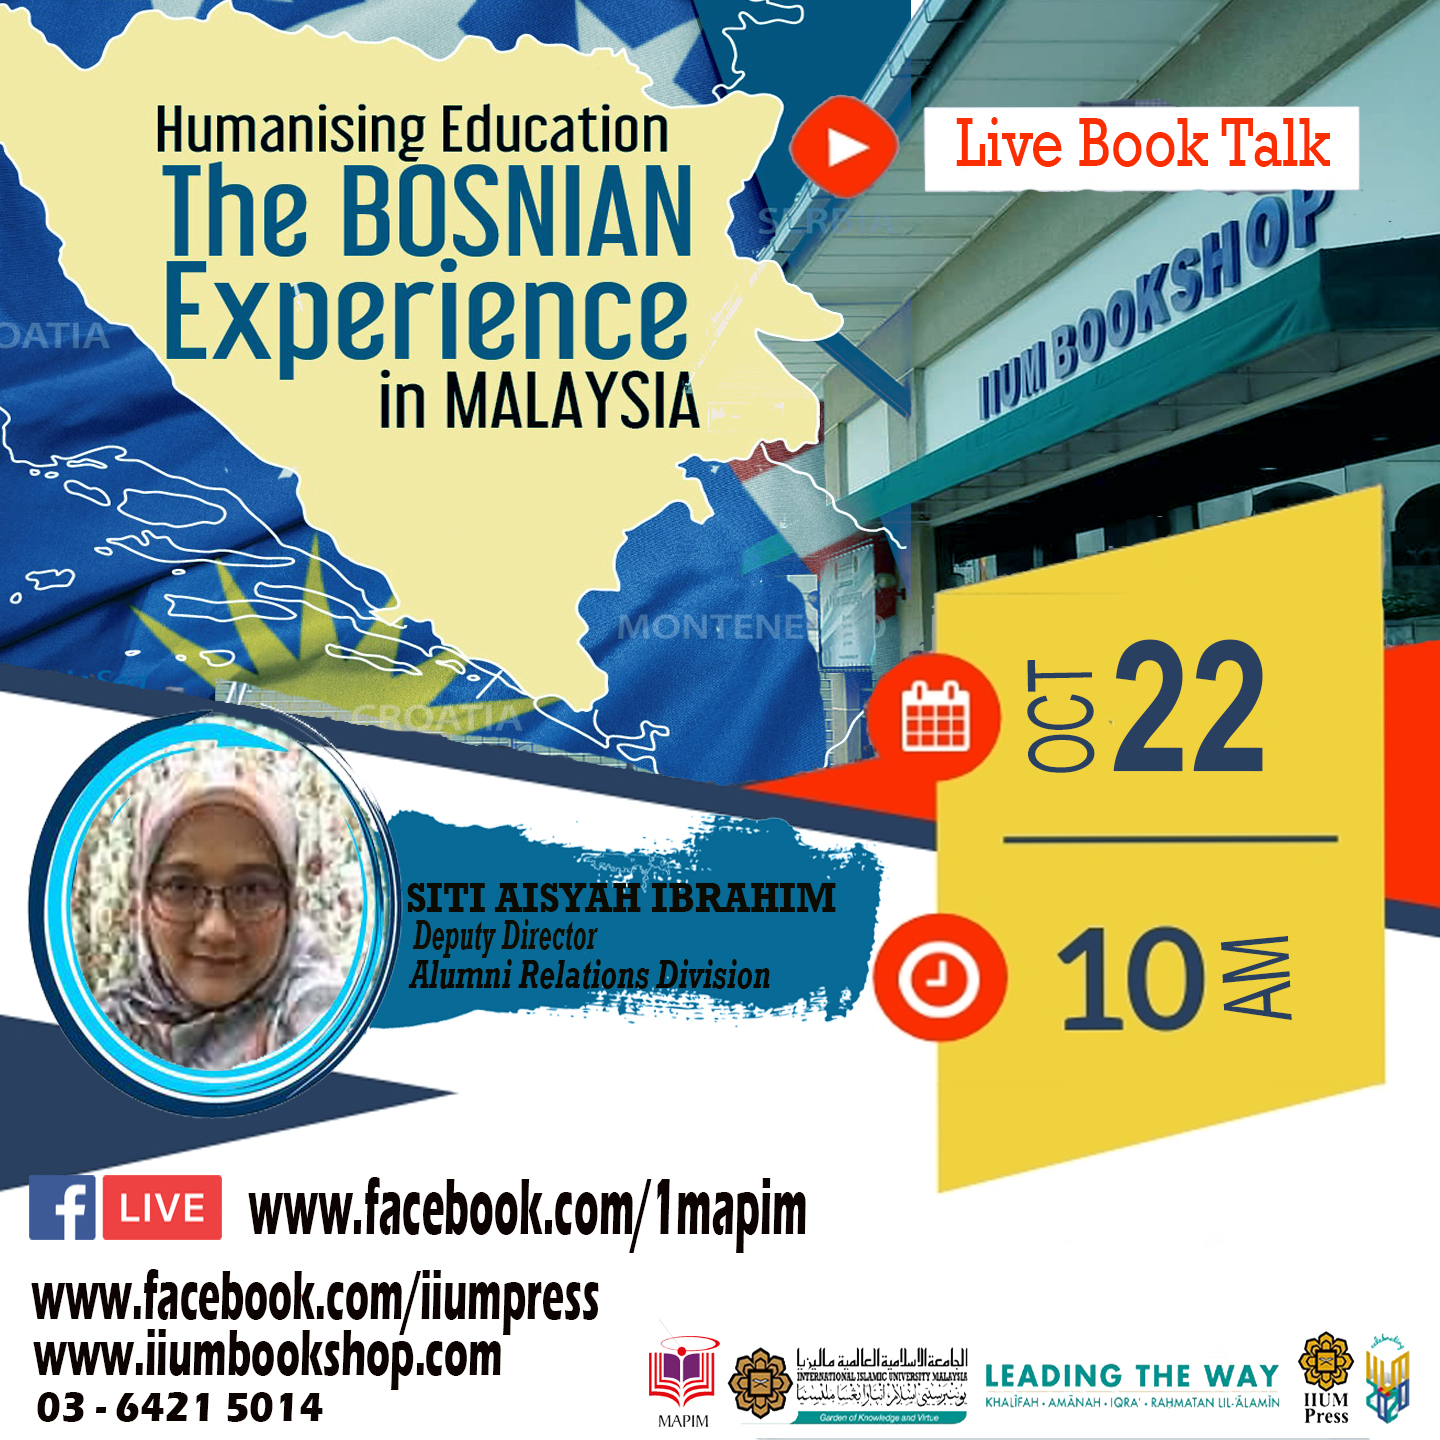 BOOK TALK: HUMANISING EDUCATION, THE BOSNIAN EXPERIENCE IN MALAYSIA